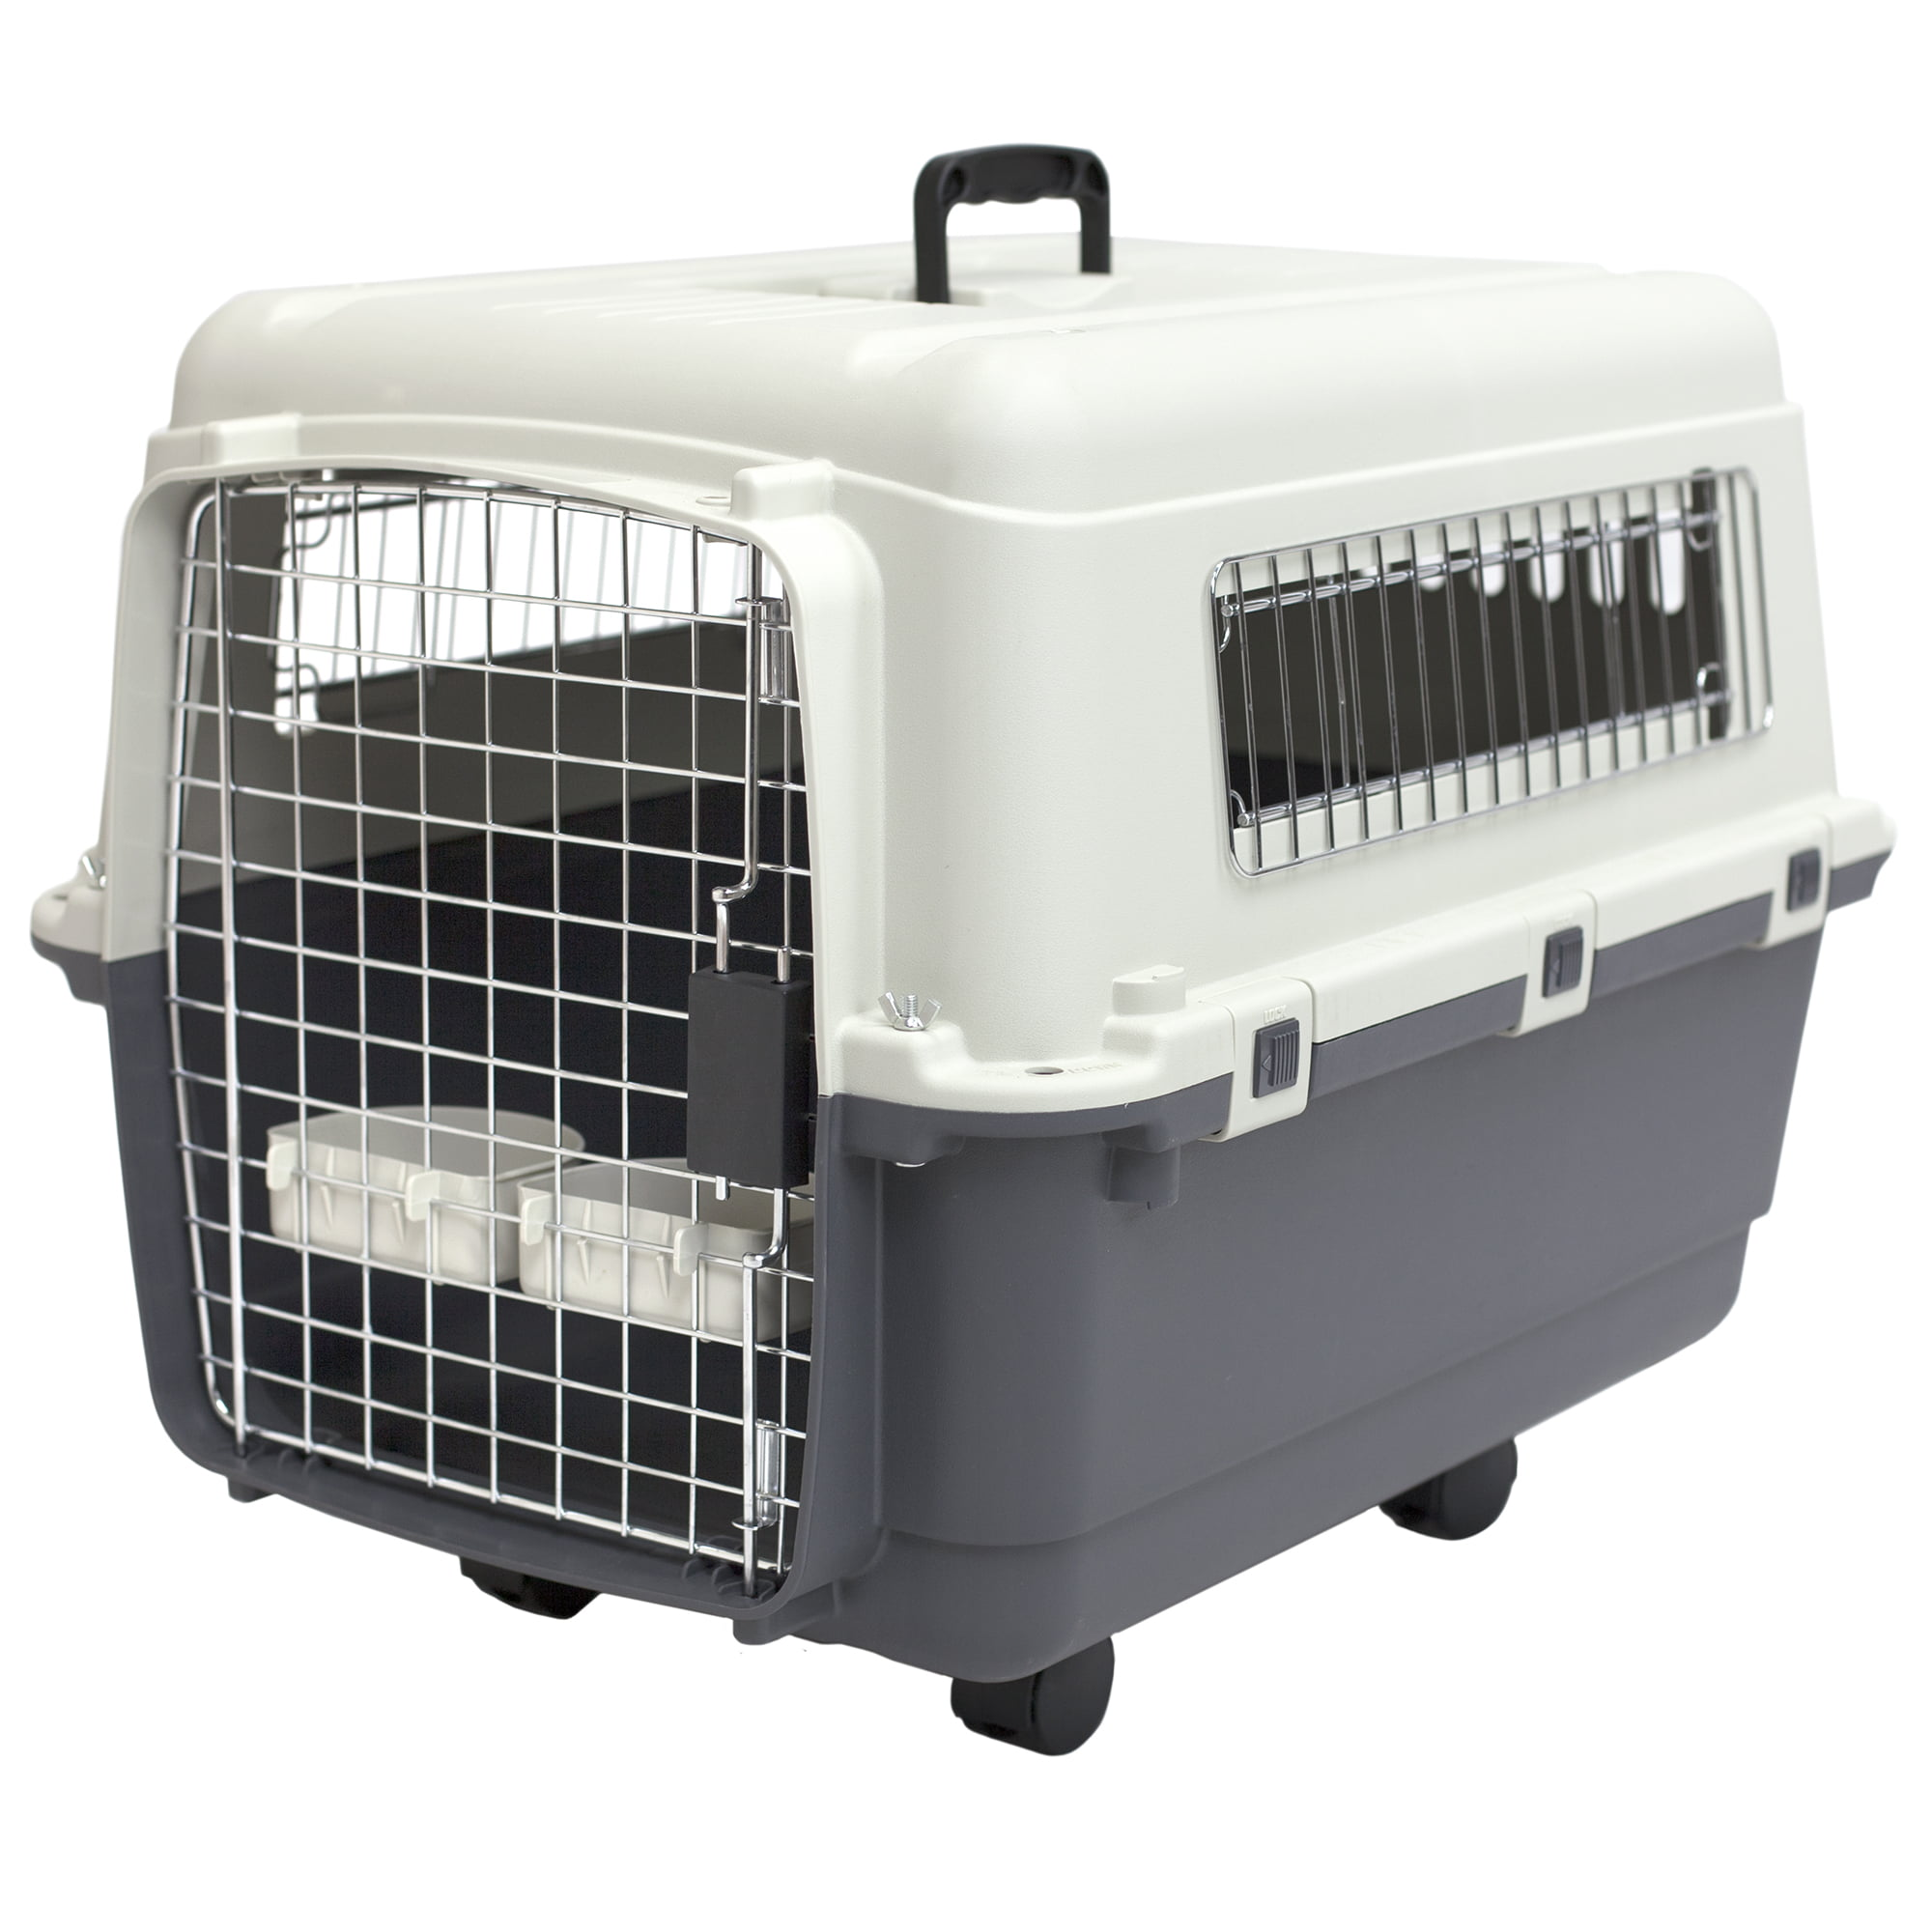 Kennels Direct Premium Plastic Dog Kennel And Travel Crate